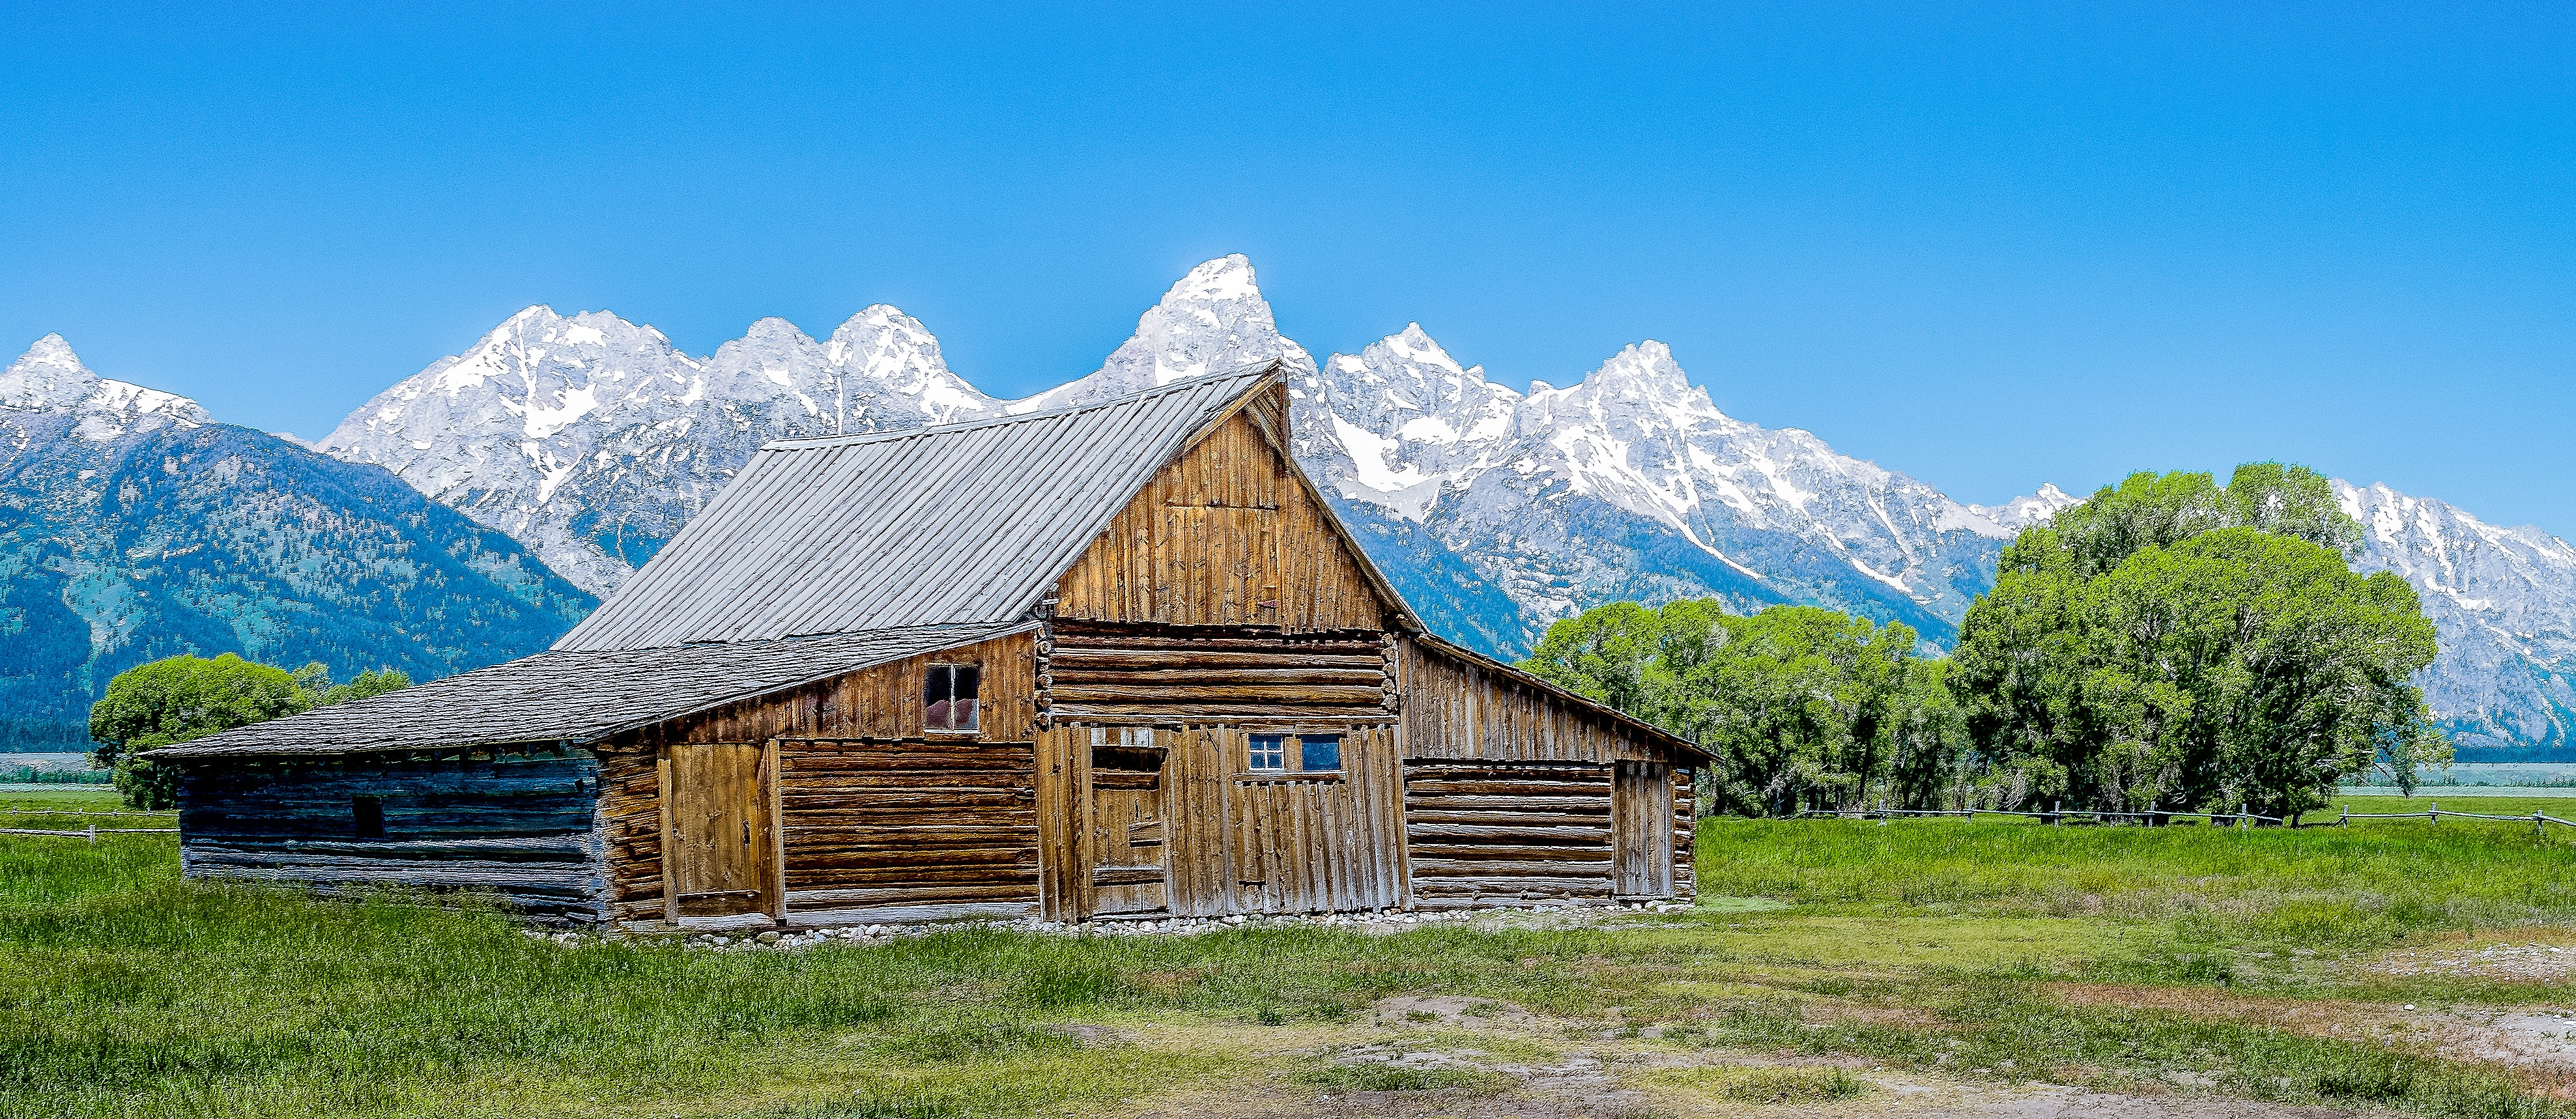 brown log house surrounded by green leaf trees with mountain alps on background